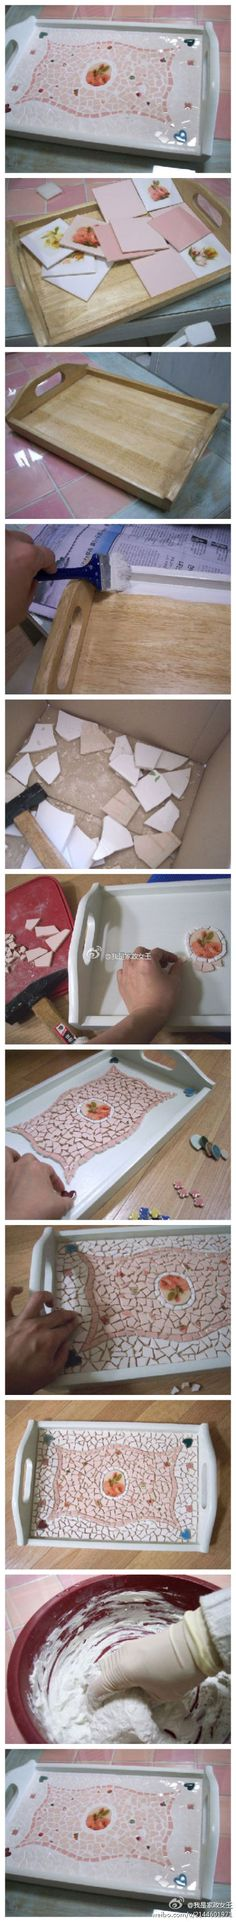 tutorial - mosaic in wooden tray